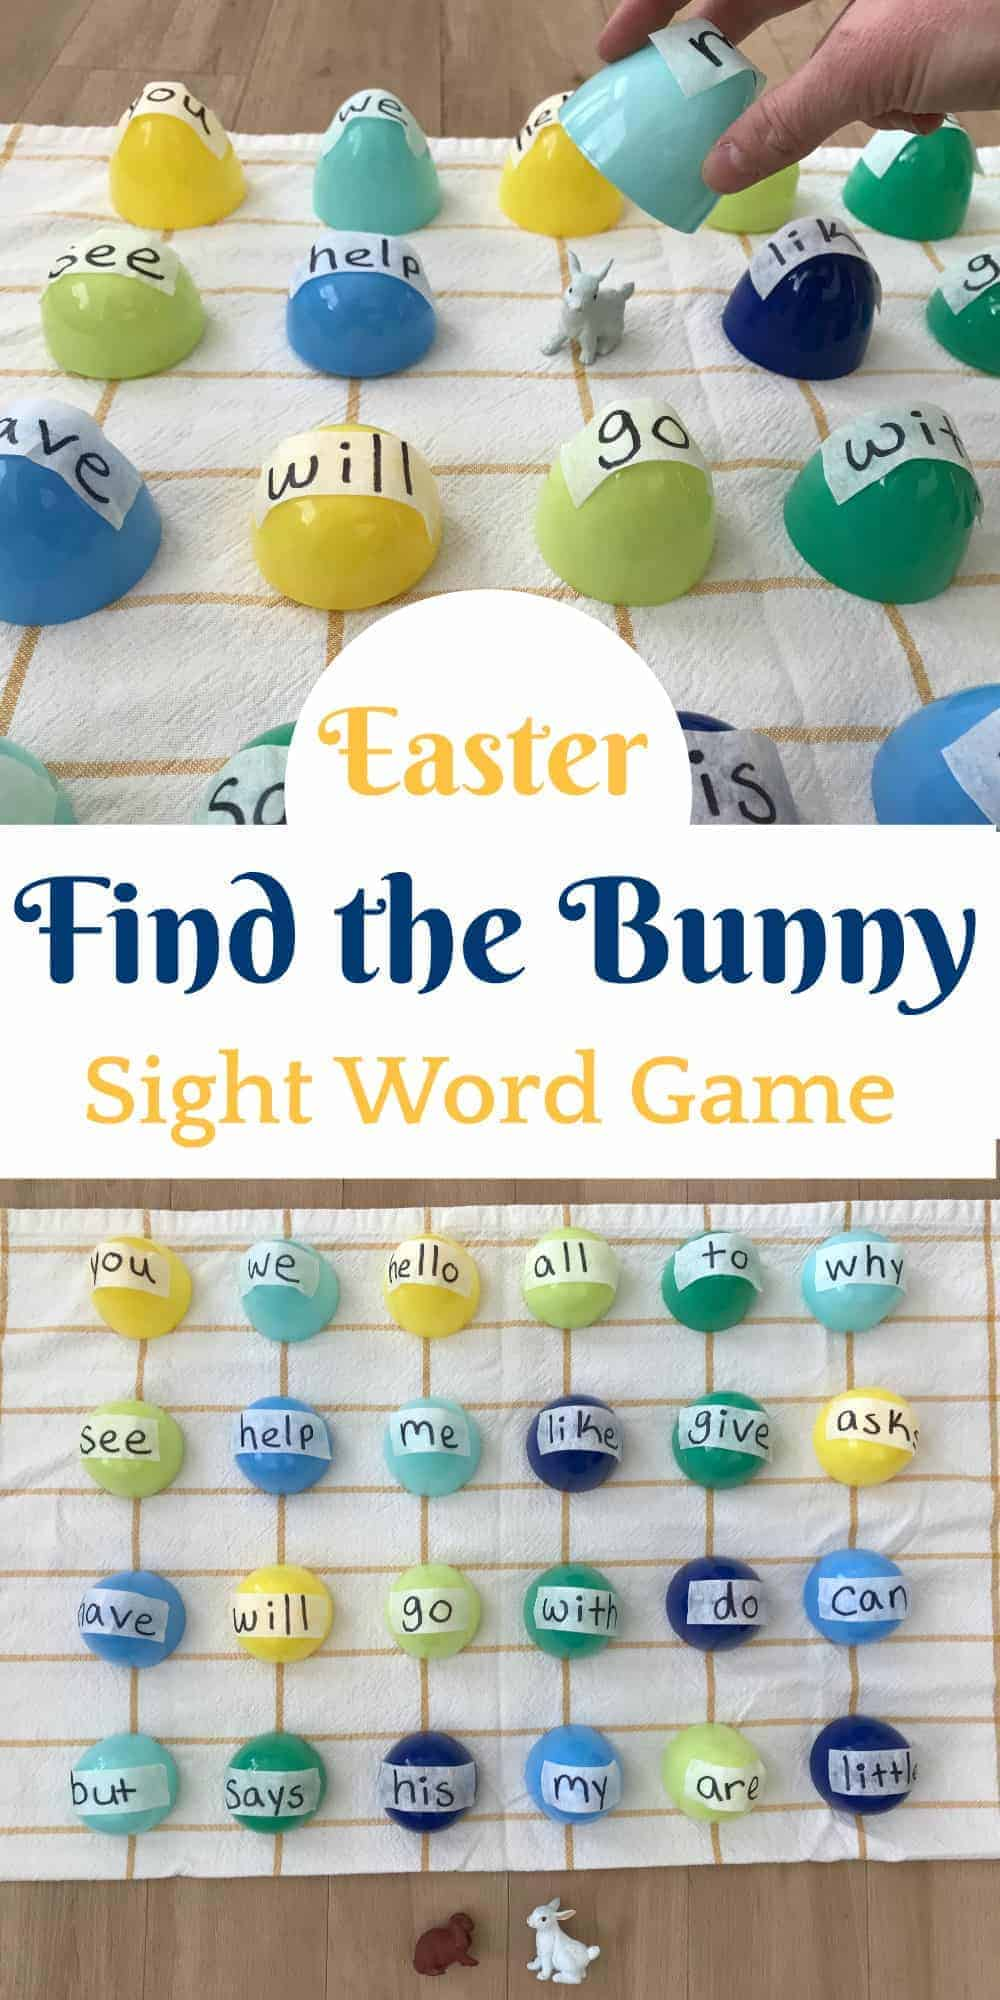 Easter egg sight reading game with hidden bunny